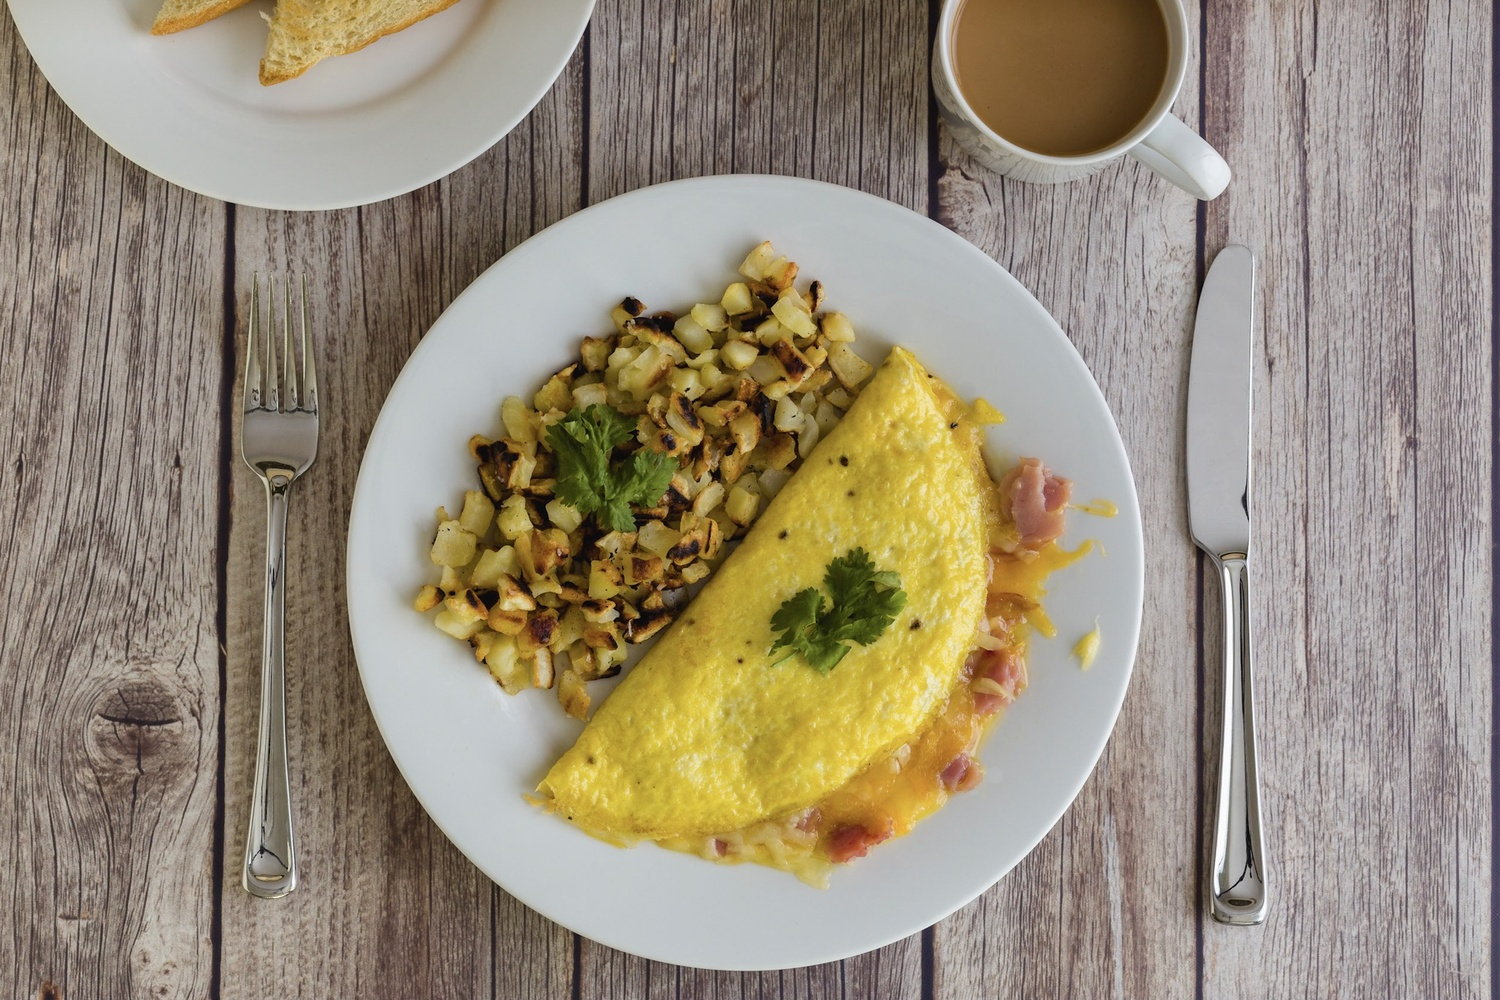 Omelette by Alex Gombash